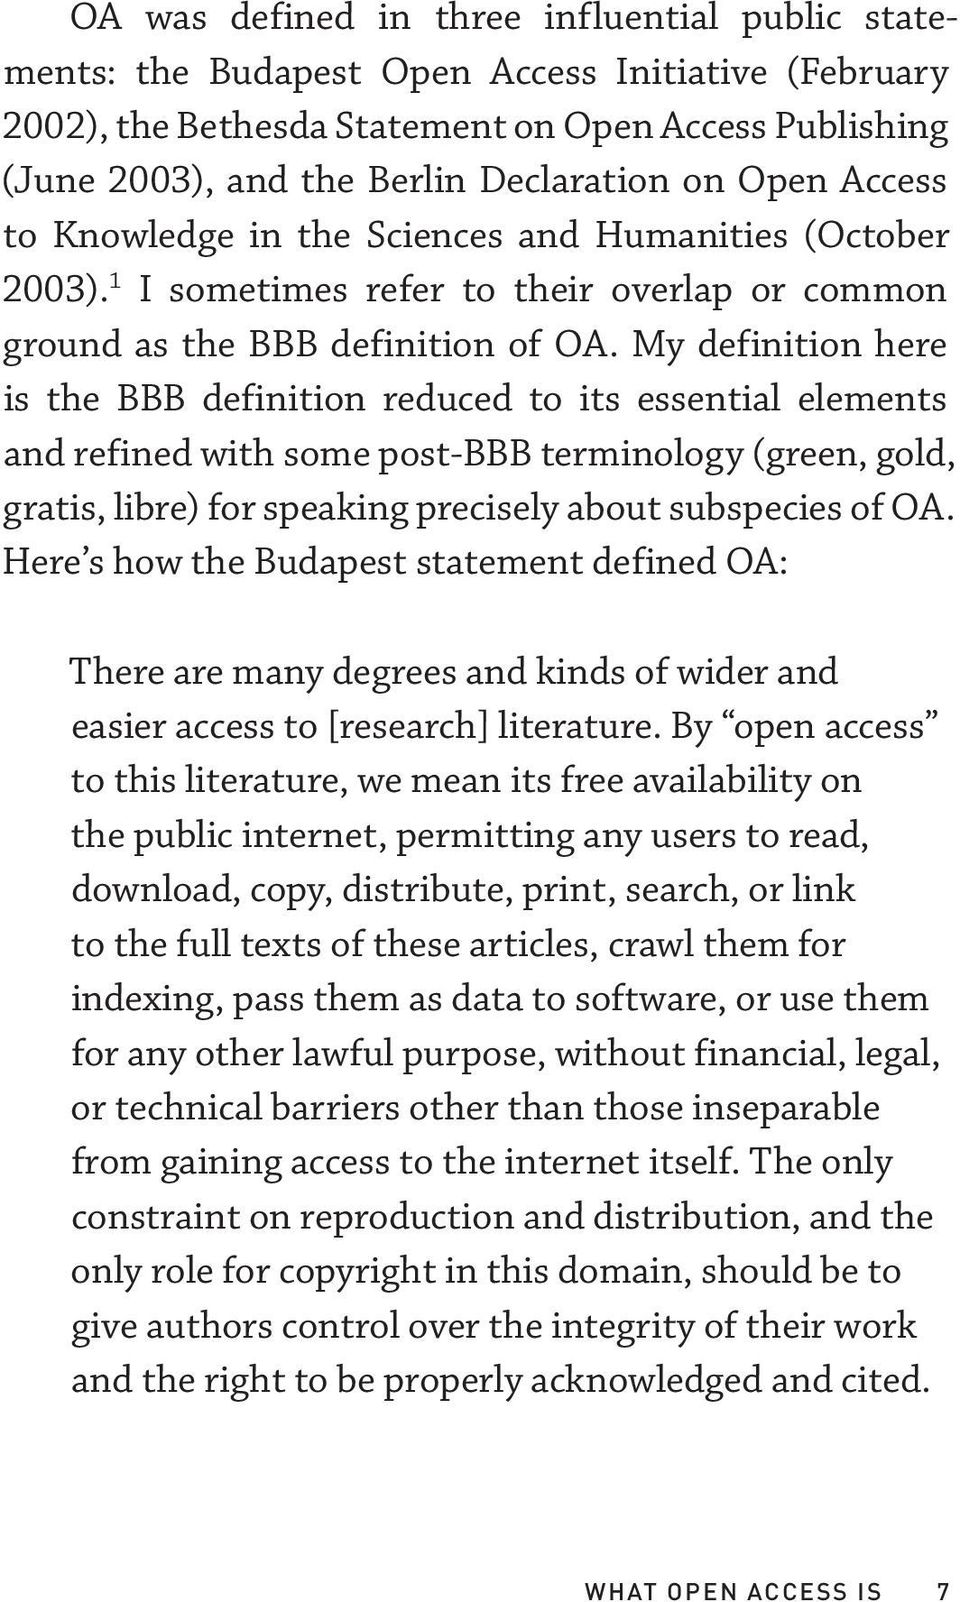 My definition here is the BBB definition reduced to its essential elements and refined with some post-bbb terminology (green, gold, gratis, libre) for speaking precisely about subspecies of OA.